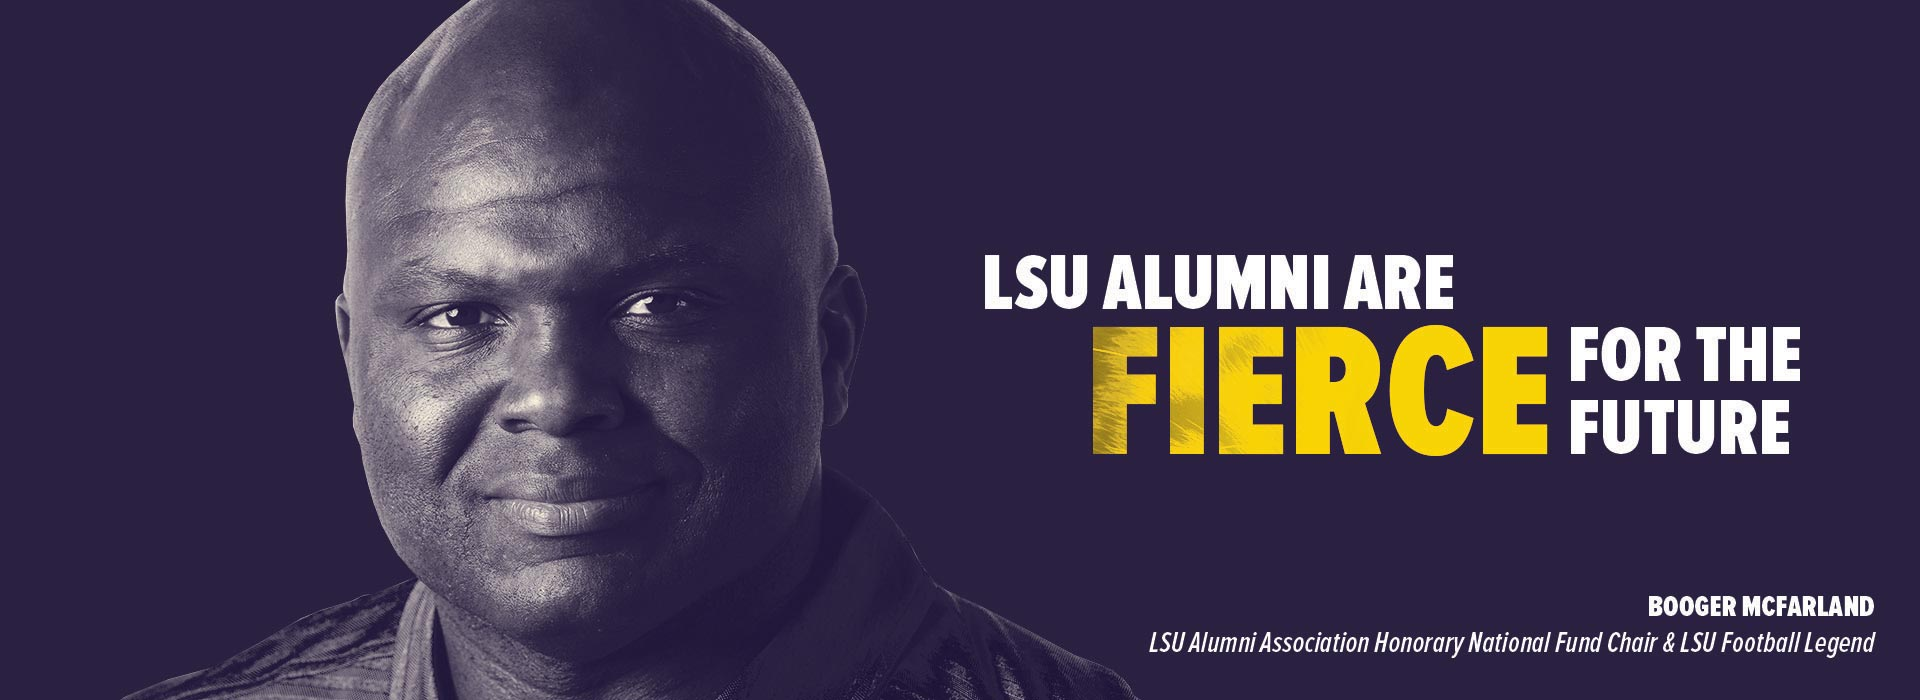 LSUAA_BoogerM_WebsiteBannerImage_1920x700